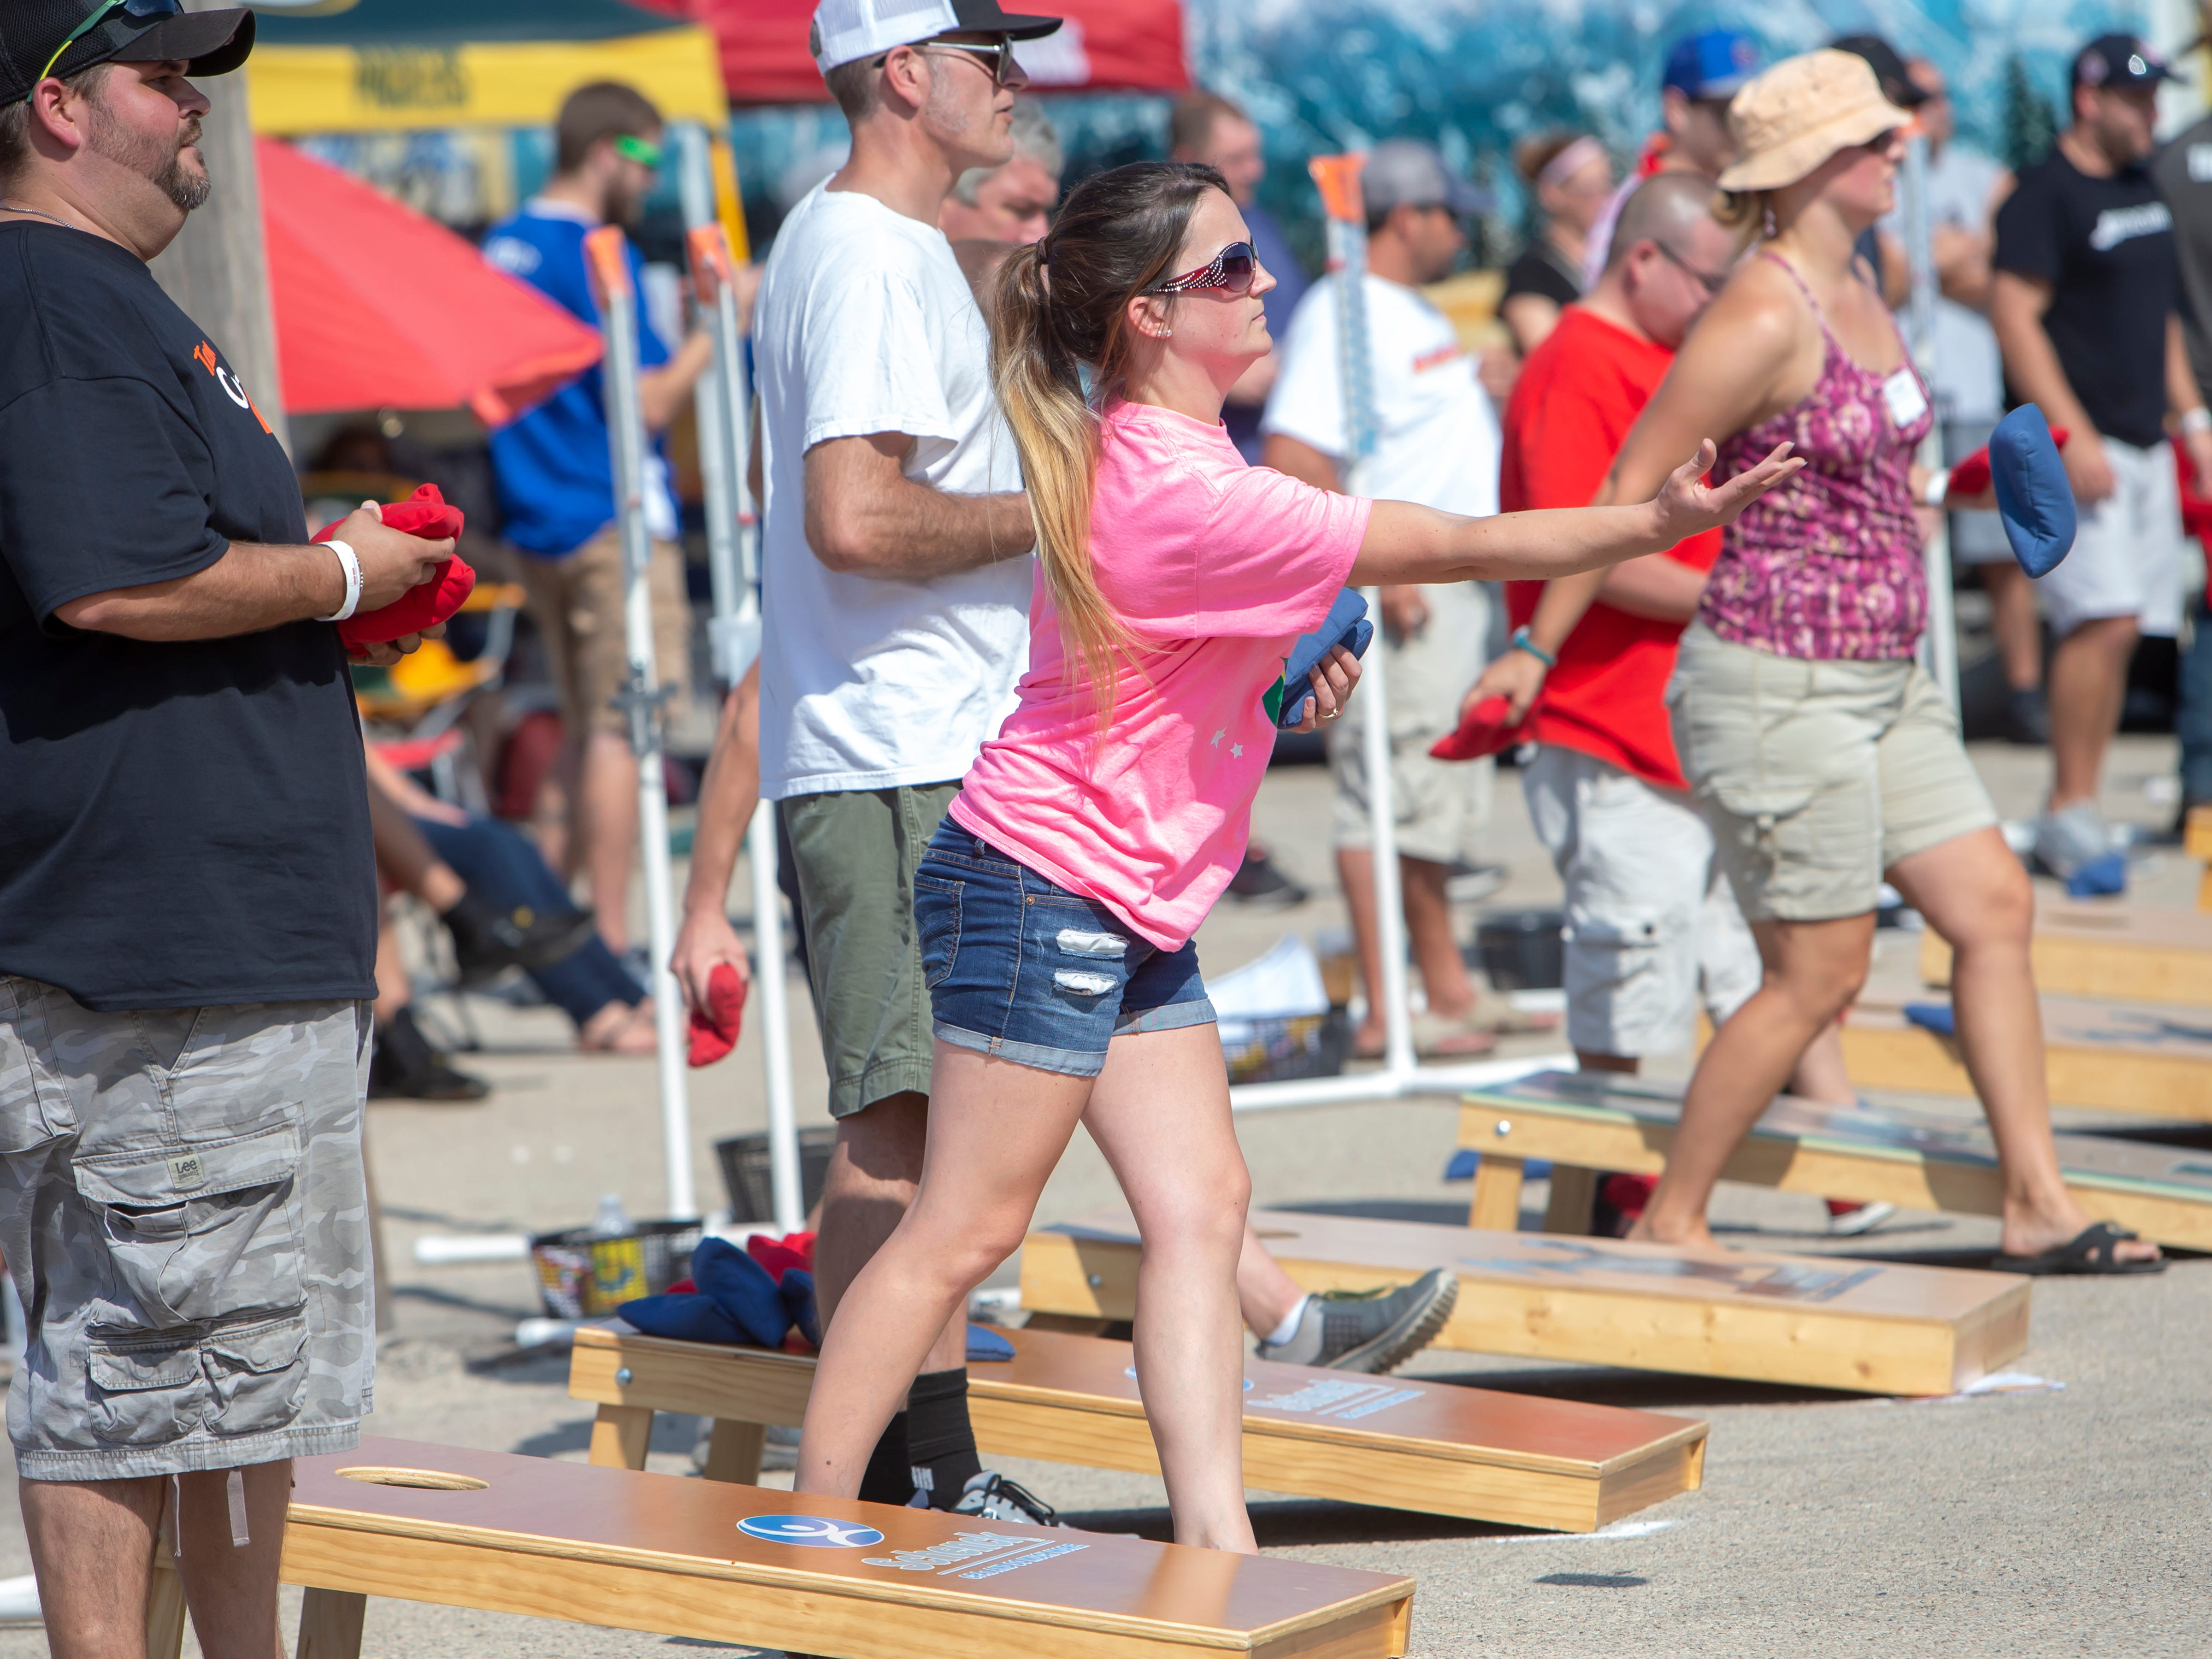 Competitors from around the state gather at Dockside Tavern in Oshkosh for the annual Wisconsin Cornhole Tourney on Saturday, Sept. 15, 2018.